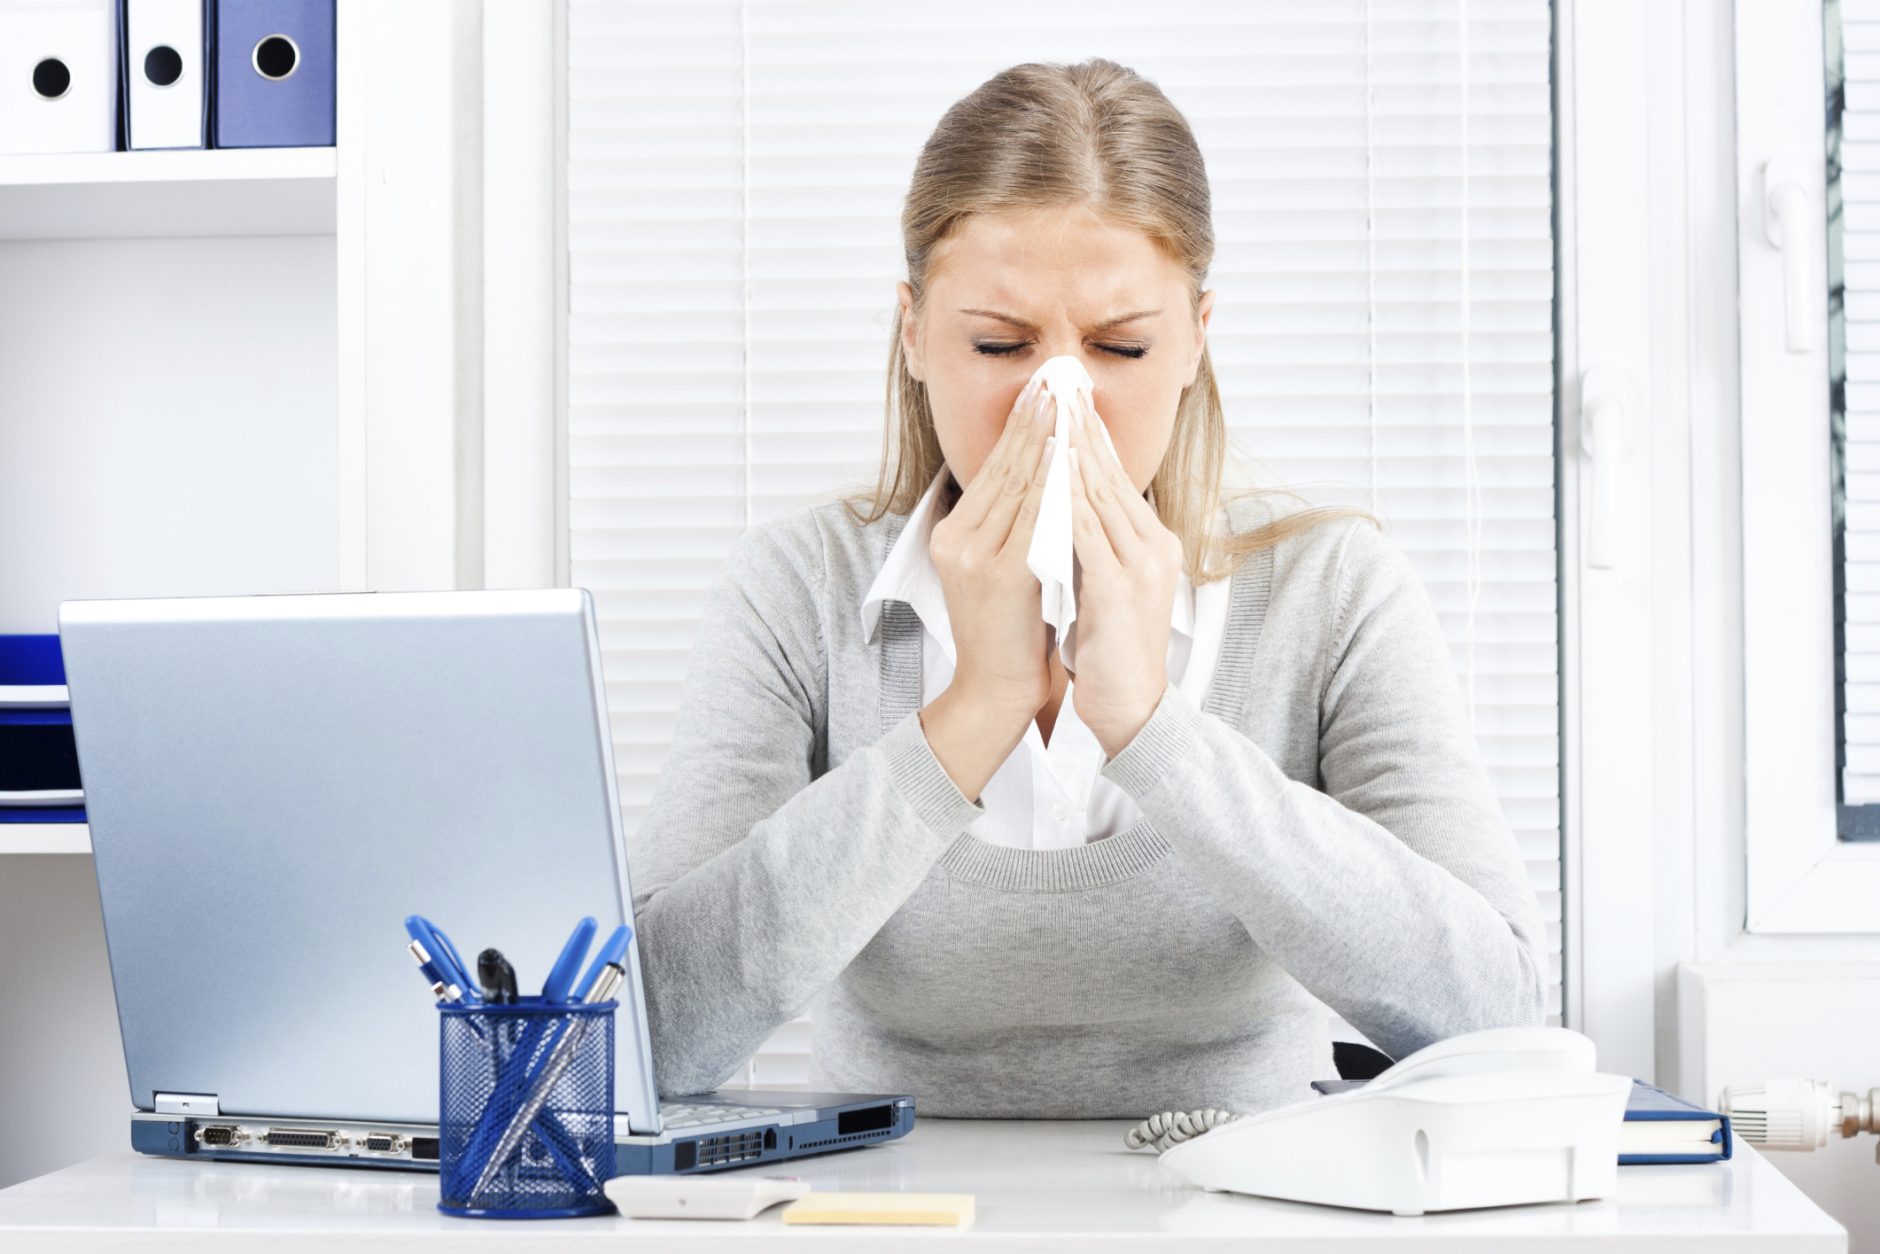 Weirdest excuses for calling in sick